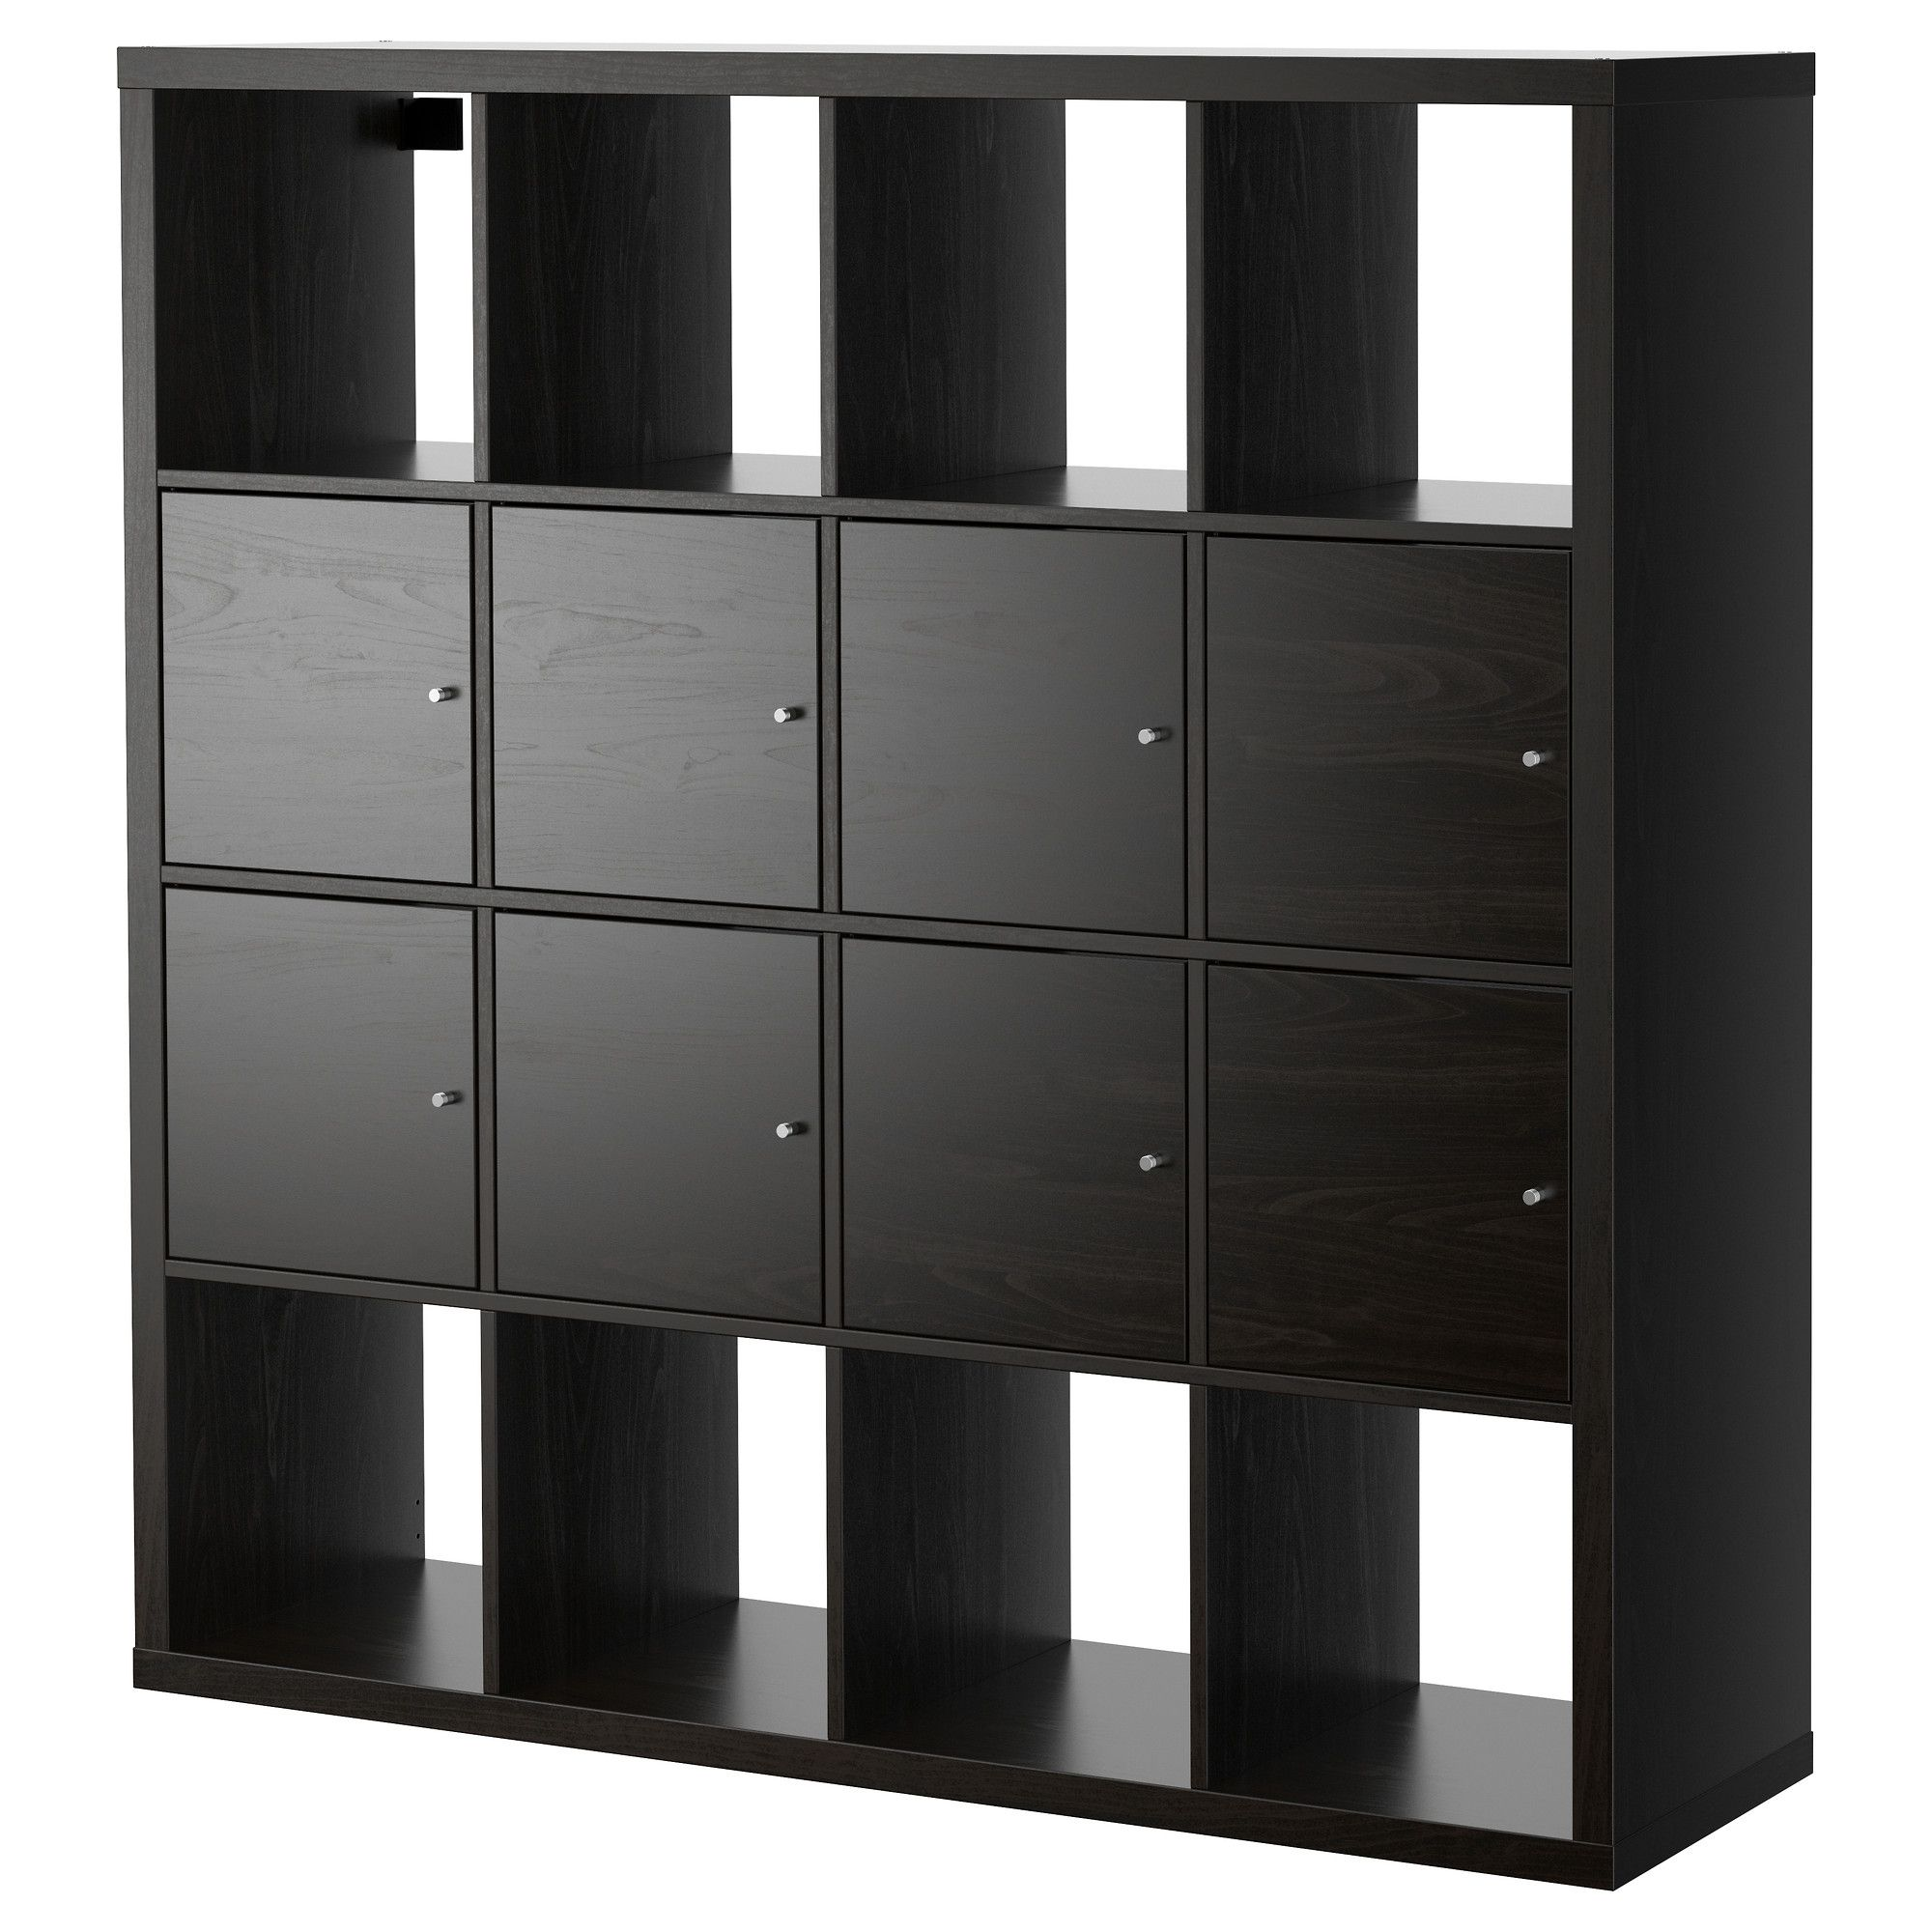 shelving unit with doors kallax shelf unit with 8 inserts black brown ikea craft 26051